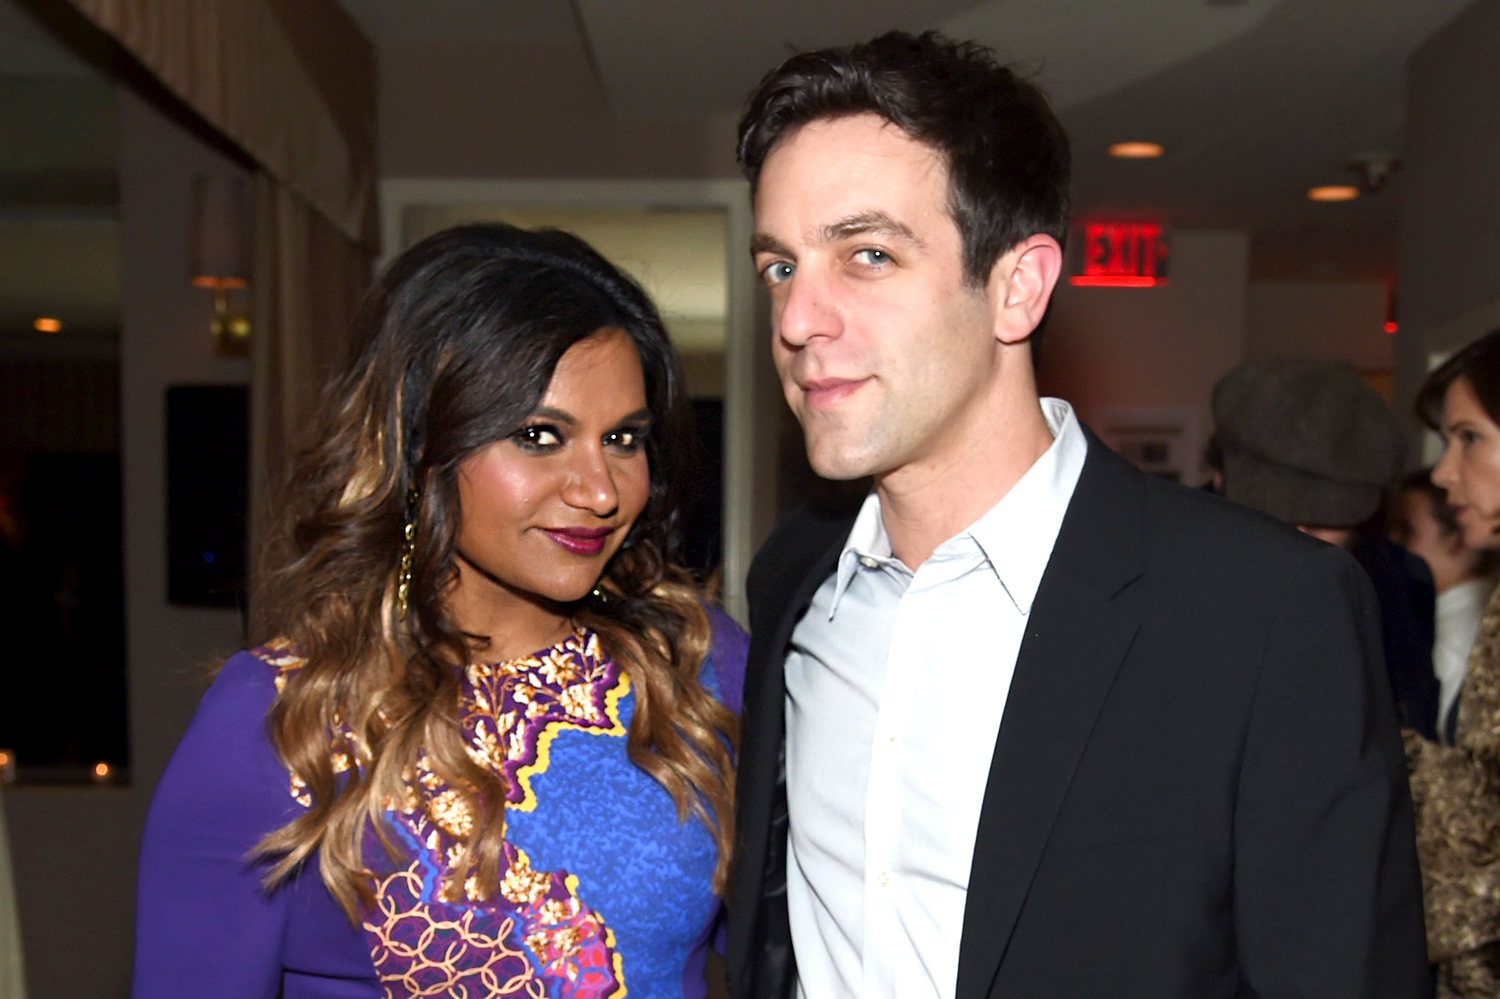 Mindy kaling dating not deceived